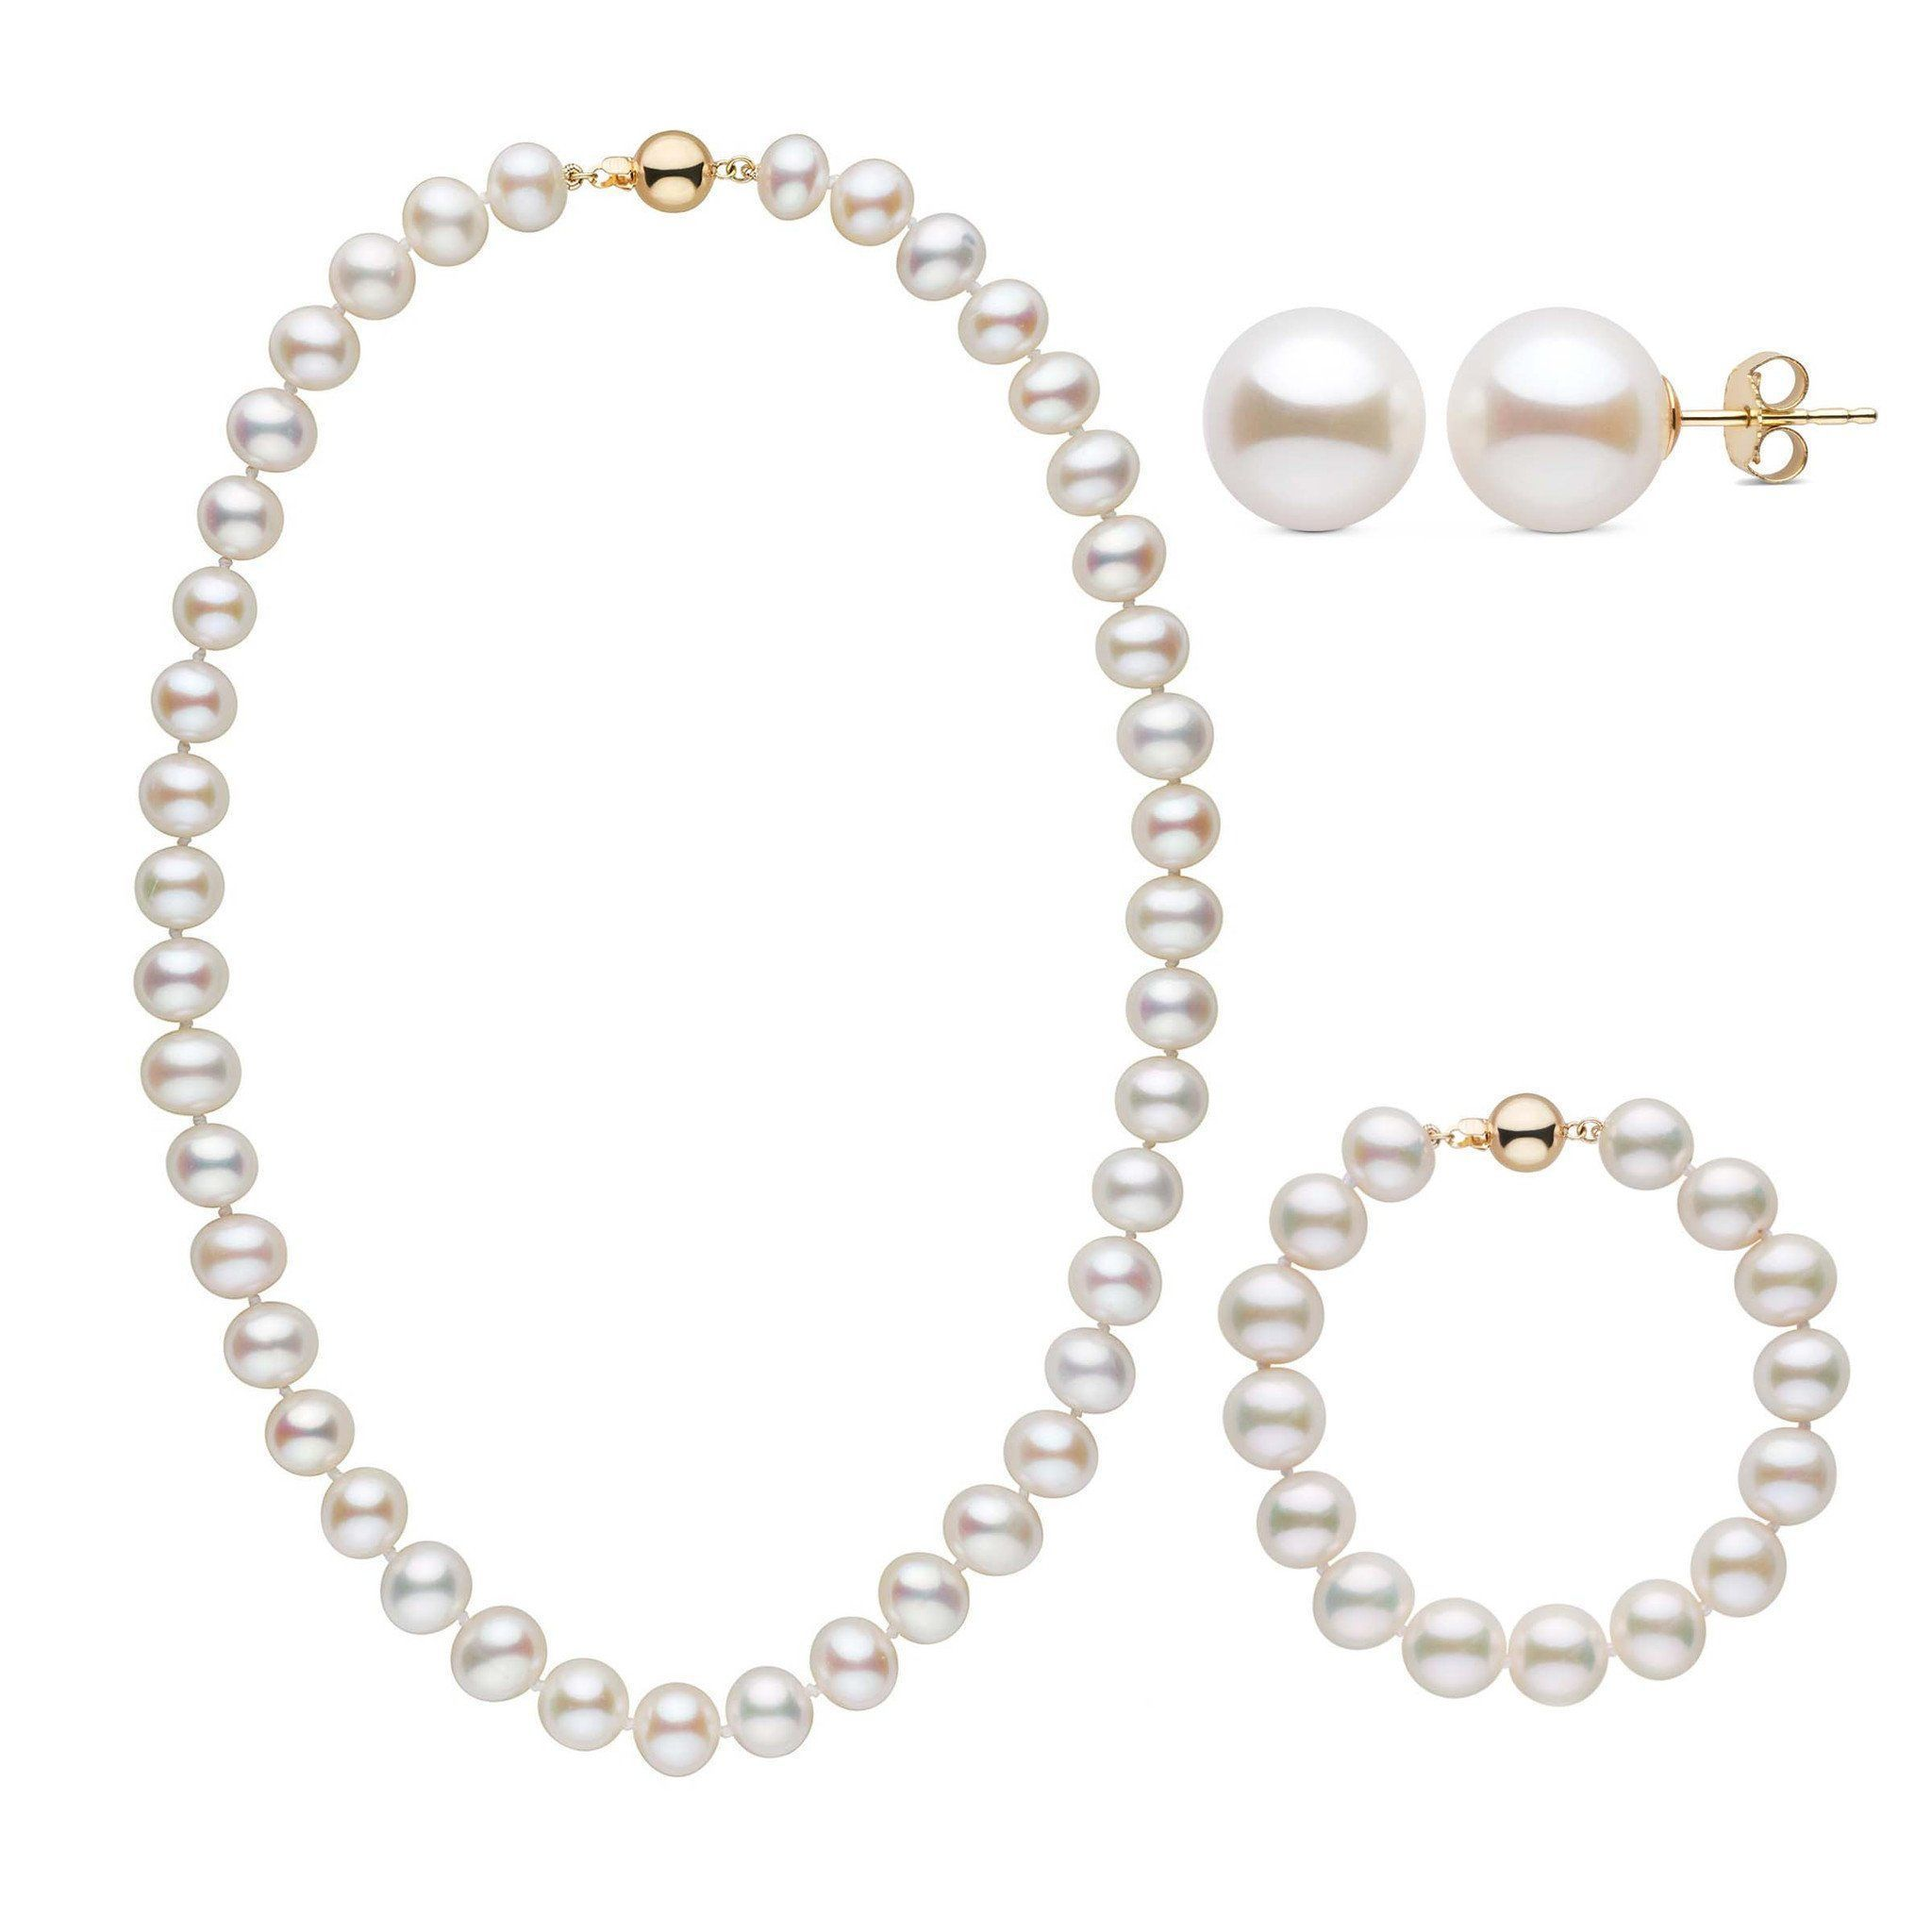 18 Inch 3 Piece 9.5-10.5 mm AA+ White Freshwater Pearl Set